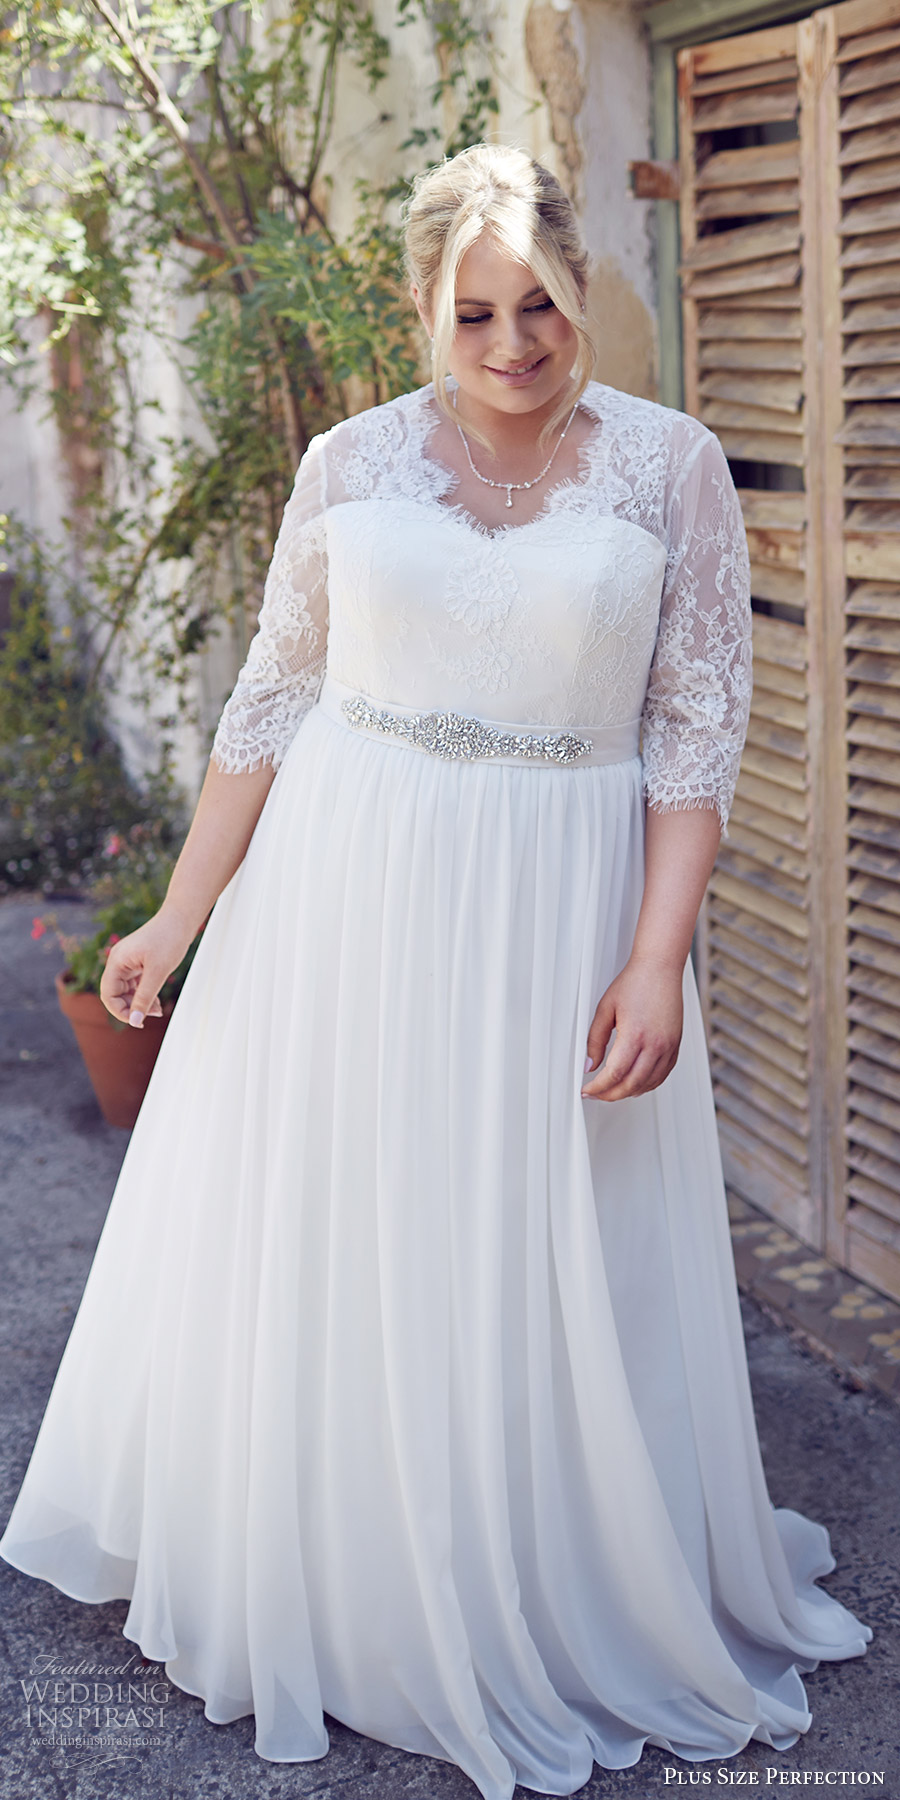 6a707dd525e plus size perfection bridal 2016 3 quarter sleeves sweetheart illusion v  neck lace bodice a line